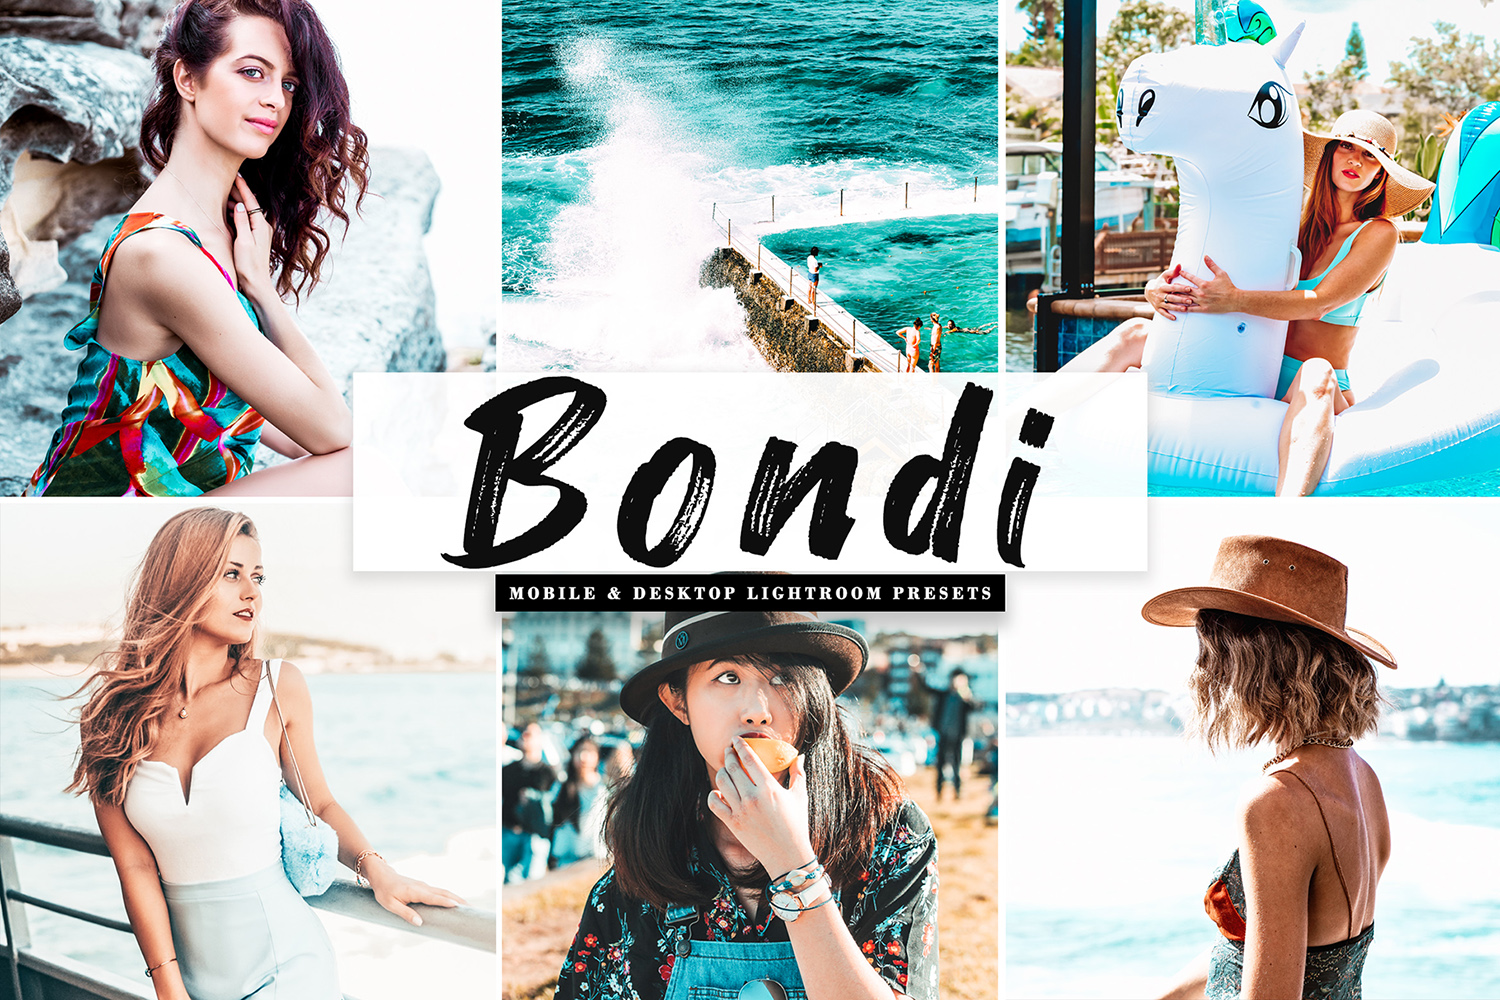 Bondi Mobile & Desktop Lightroom Presets example image 1